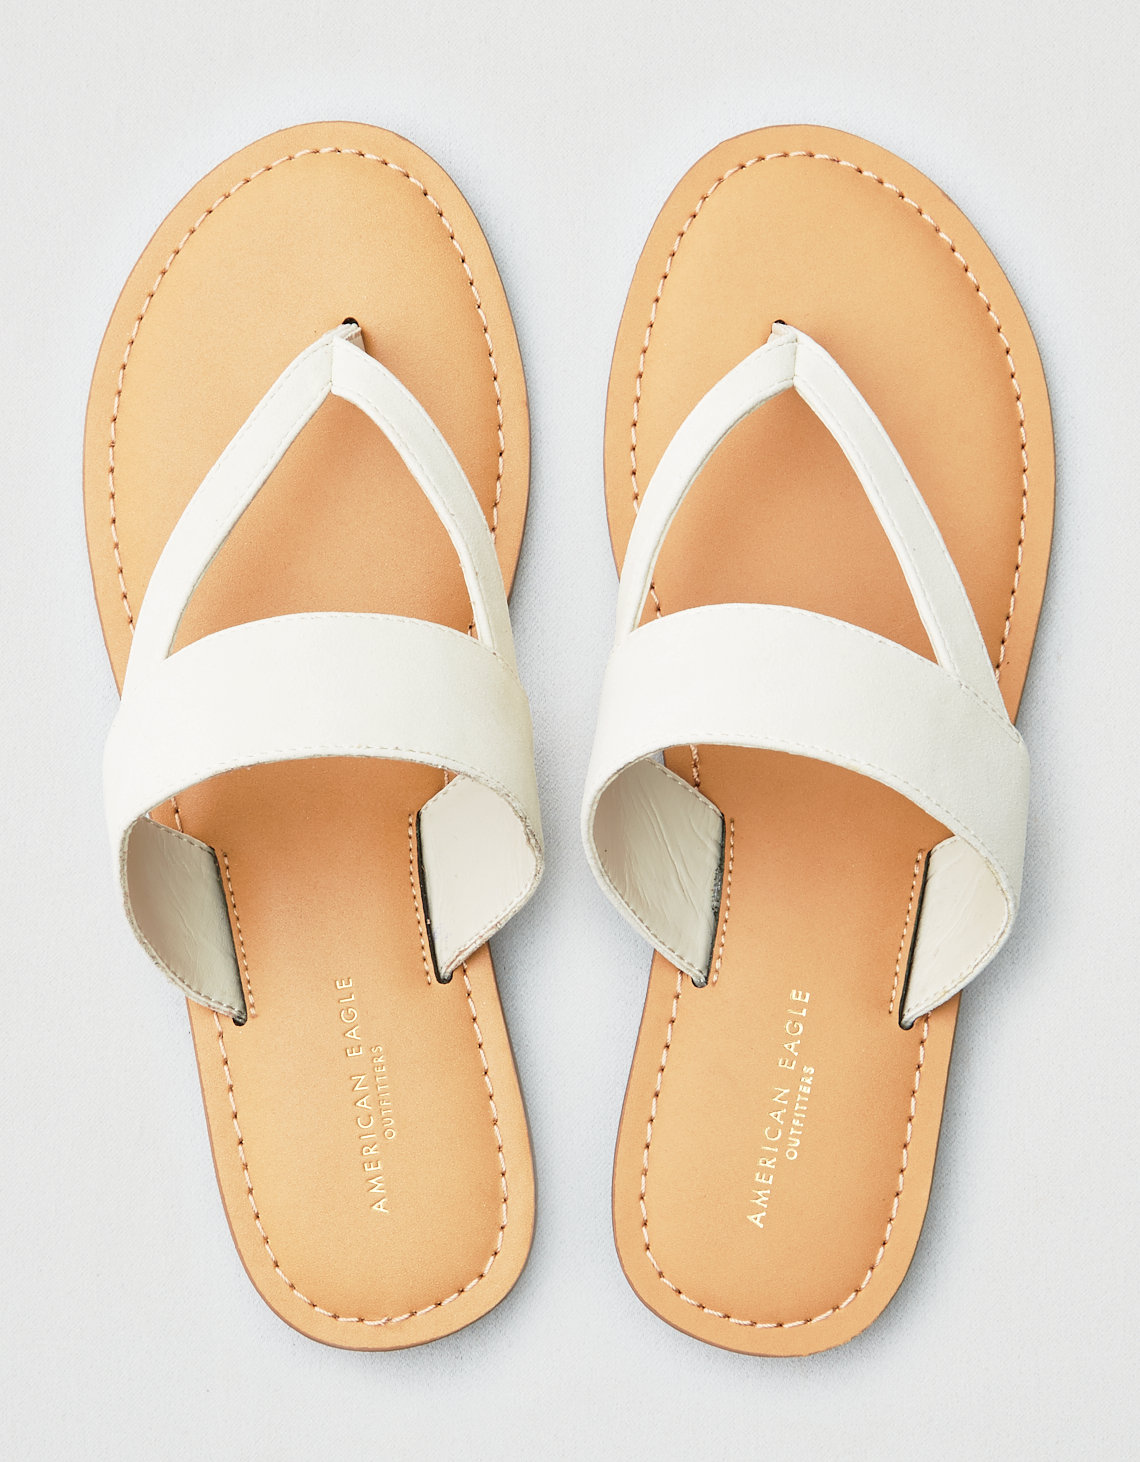 df8b9c3b282 AEO Thong Slide Sandals. Placeholder image. Product Image